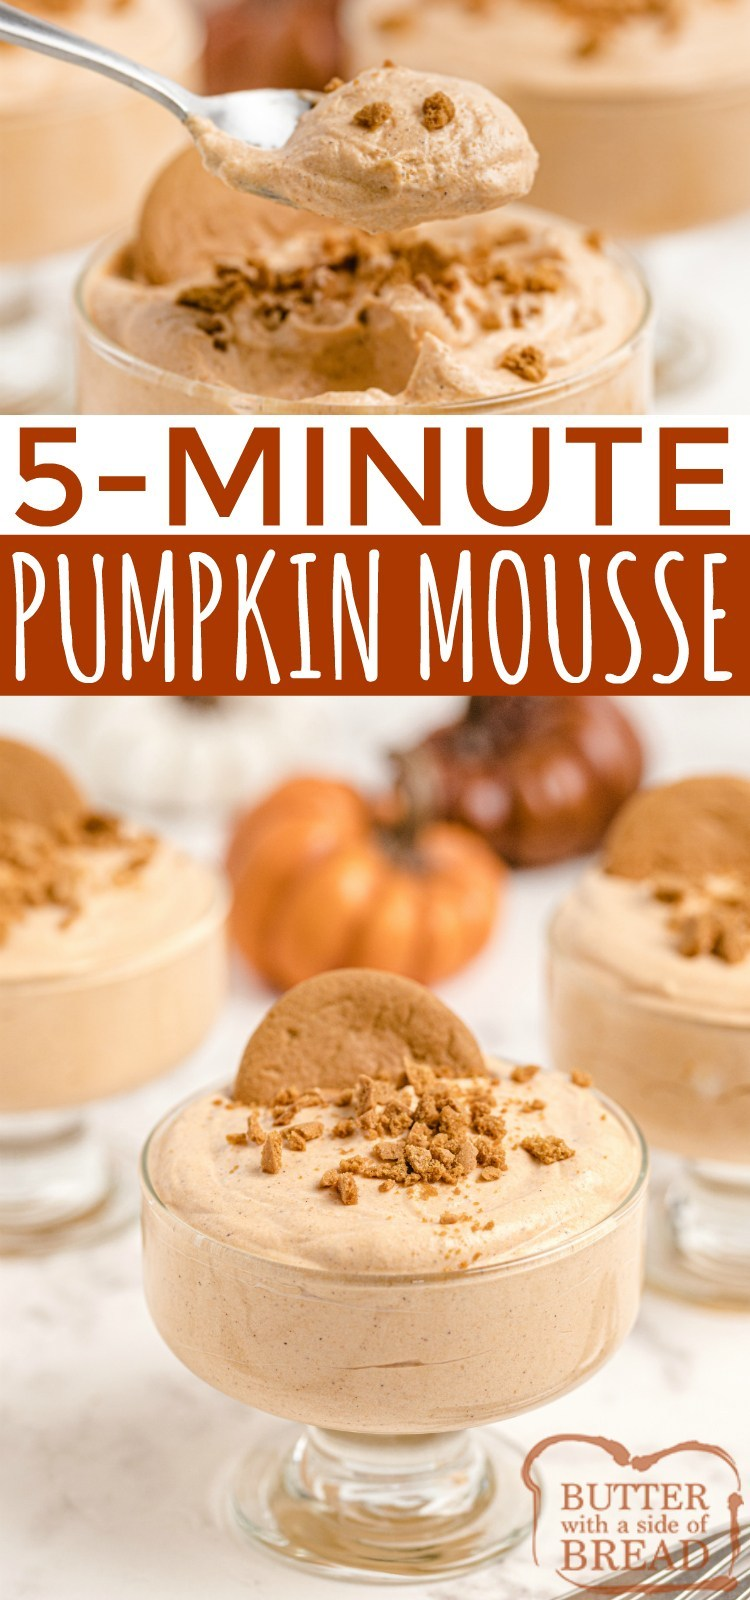 Easy Pumpkin Mousse is an easy no-bake dessert made in just a few minutes with 5 ingredients. Garnish this simple pumpkin fluff recipe with gingersnaps for a delicious fall treat!